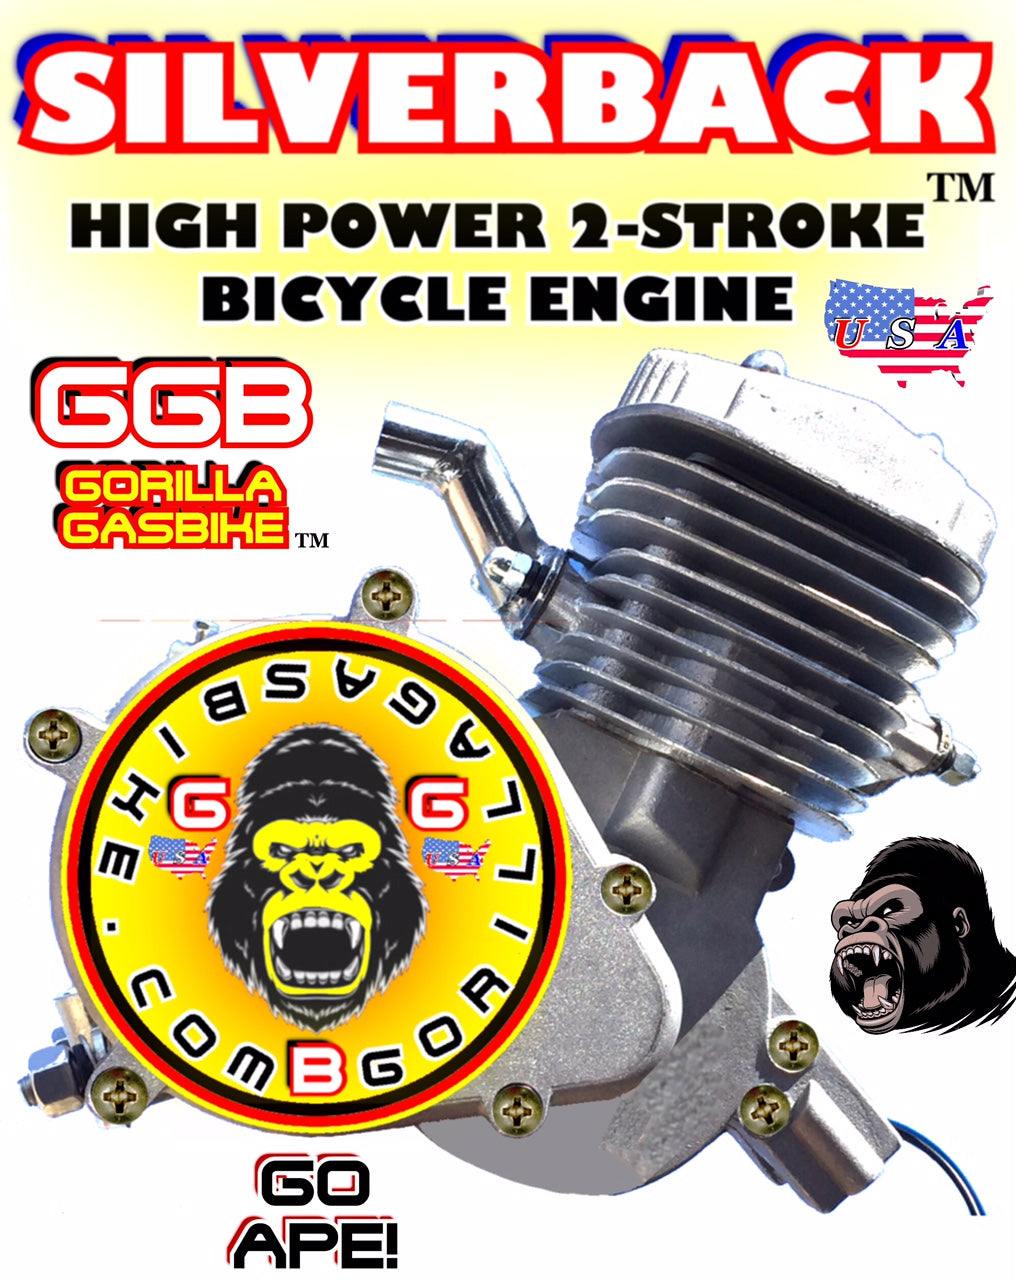 SILVERBACK TM 2-STROKE 48CC MOTORIZED BIKE ENGINE